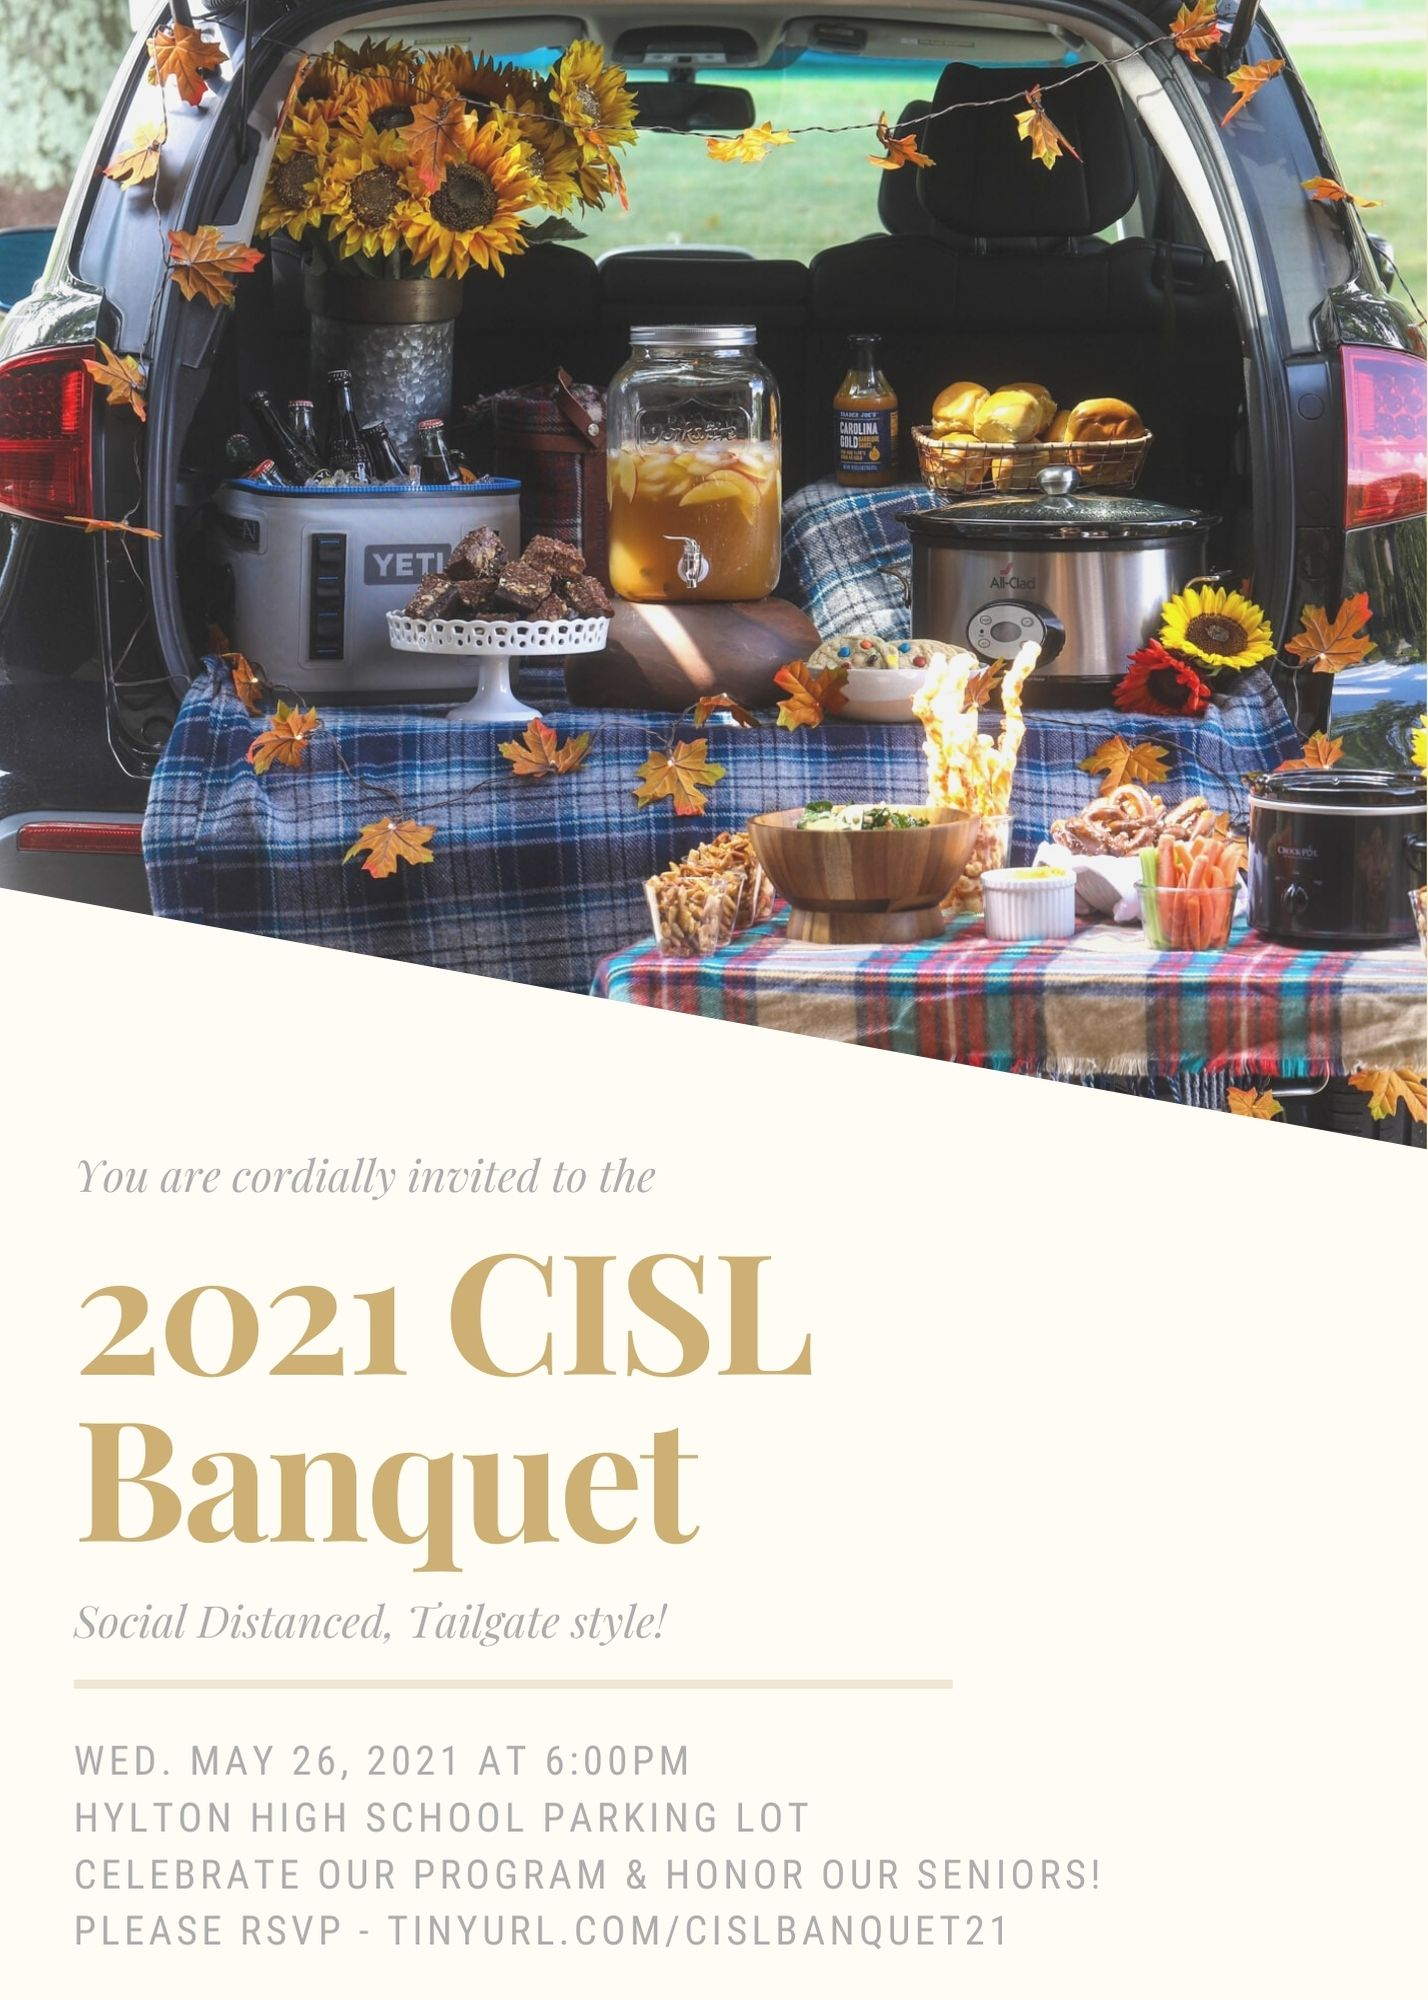 CISL Banquet invitation